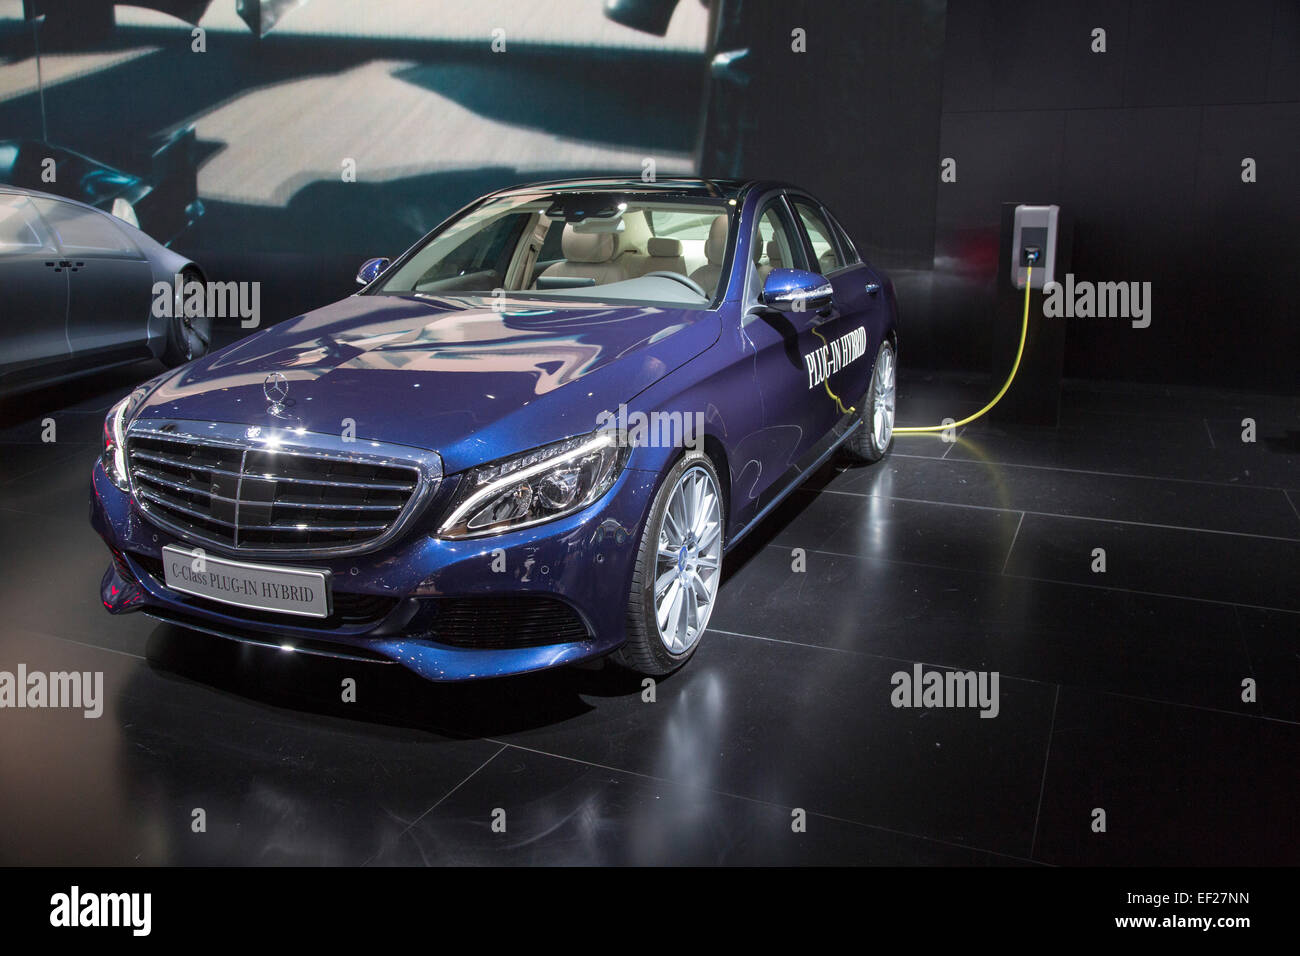 Detroit, Michigan - The Mercedes-Benz C-Class plug-in hybrid car on display at the North American International - Stock Image